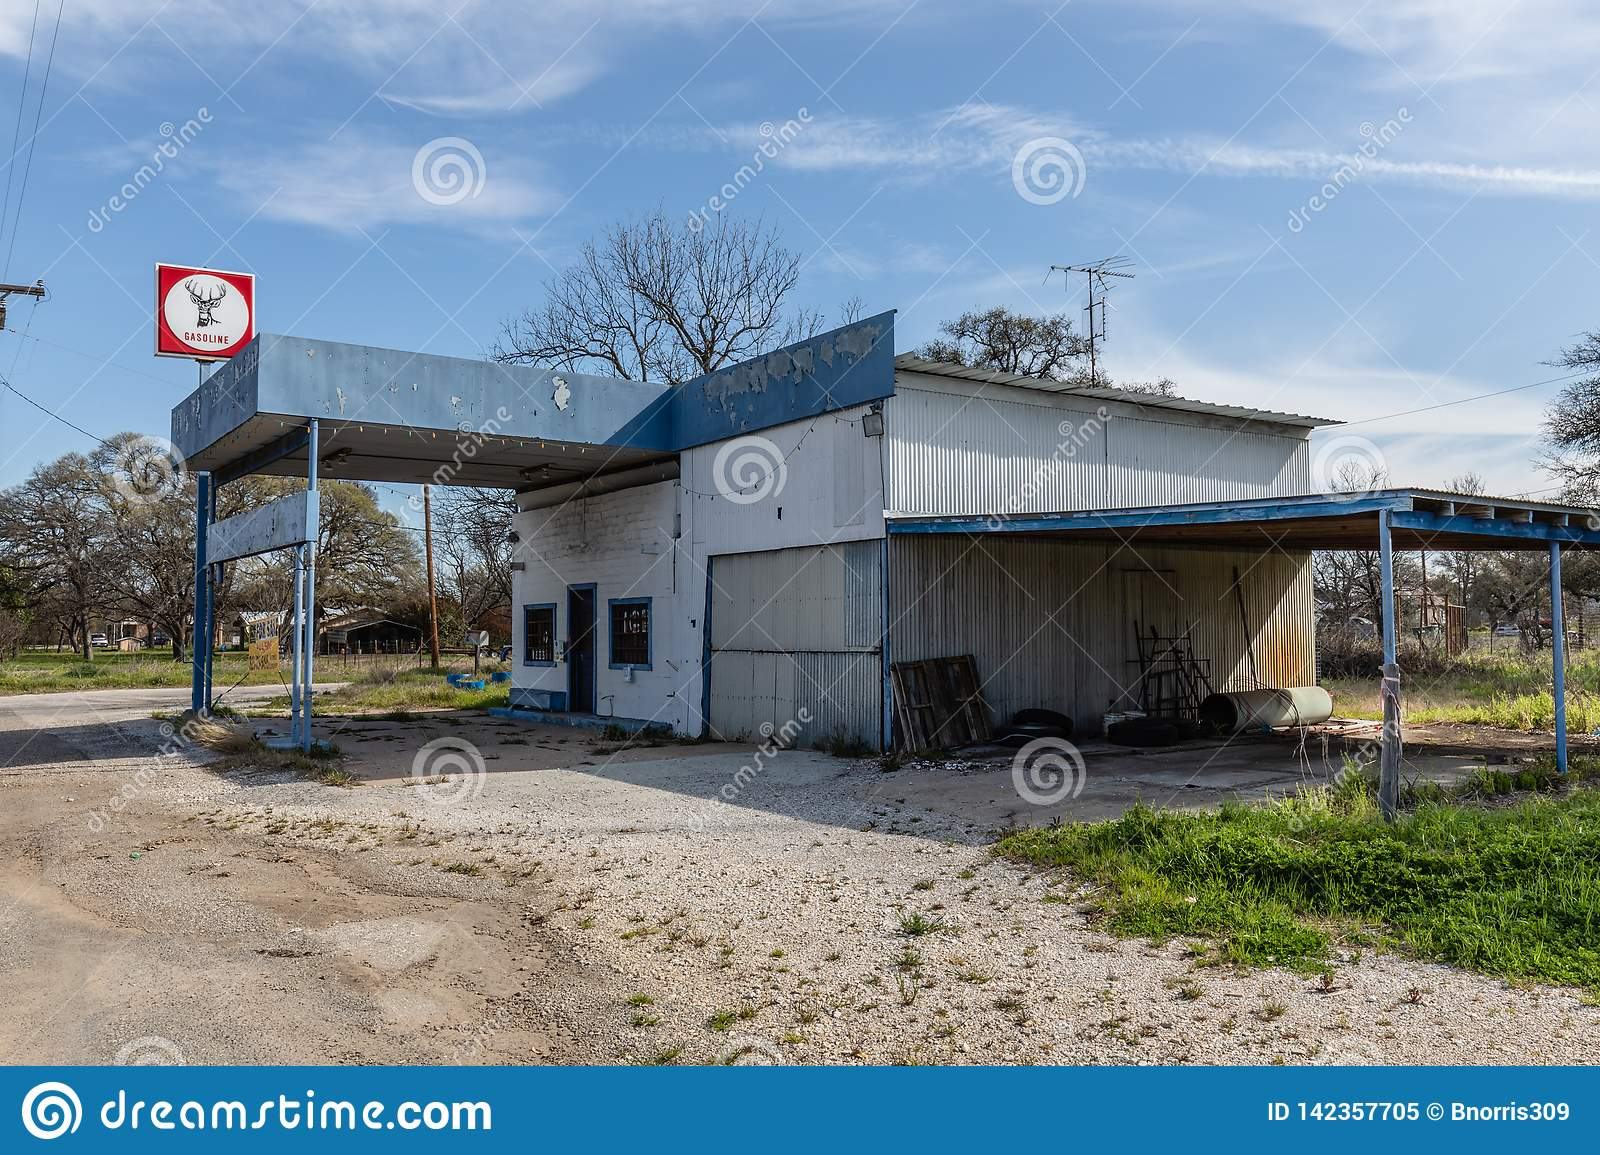 1 136 Gas Station Sale Photos Free Royalty Free Stock Photos From Dreamstime